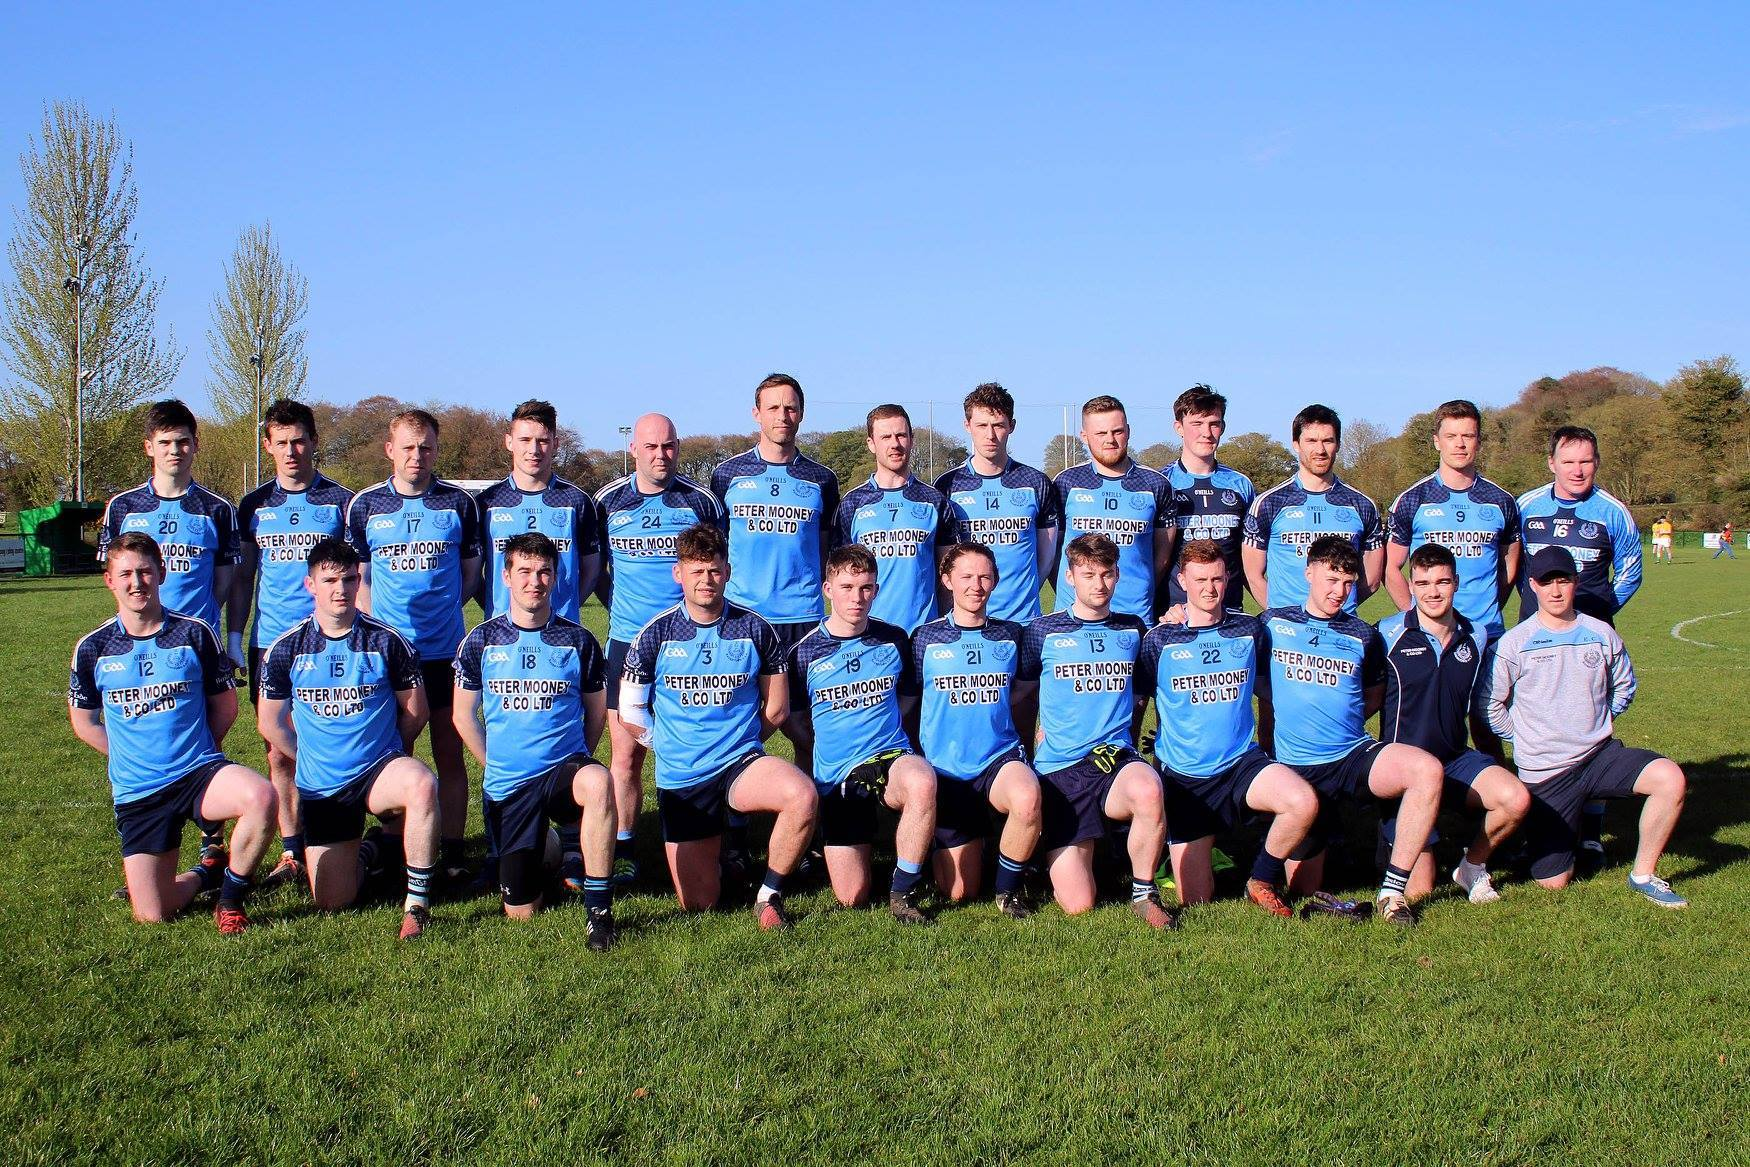 Mens 20senior 20team